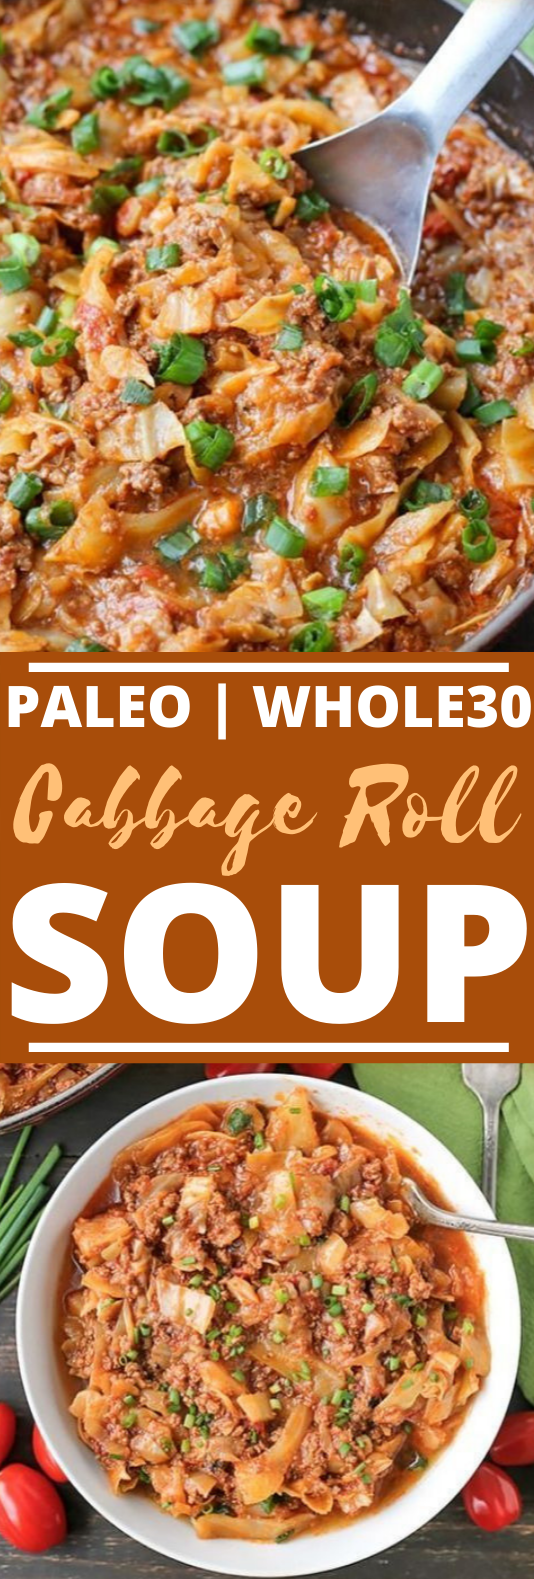 Paleo Whole30 Cabbage Roll Soup #healthy #whole30 #lowcarb #paleo #soup